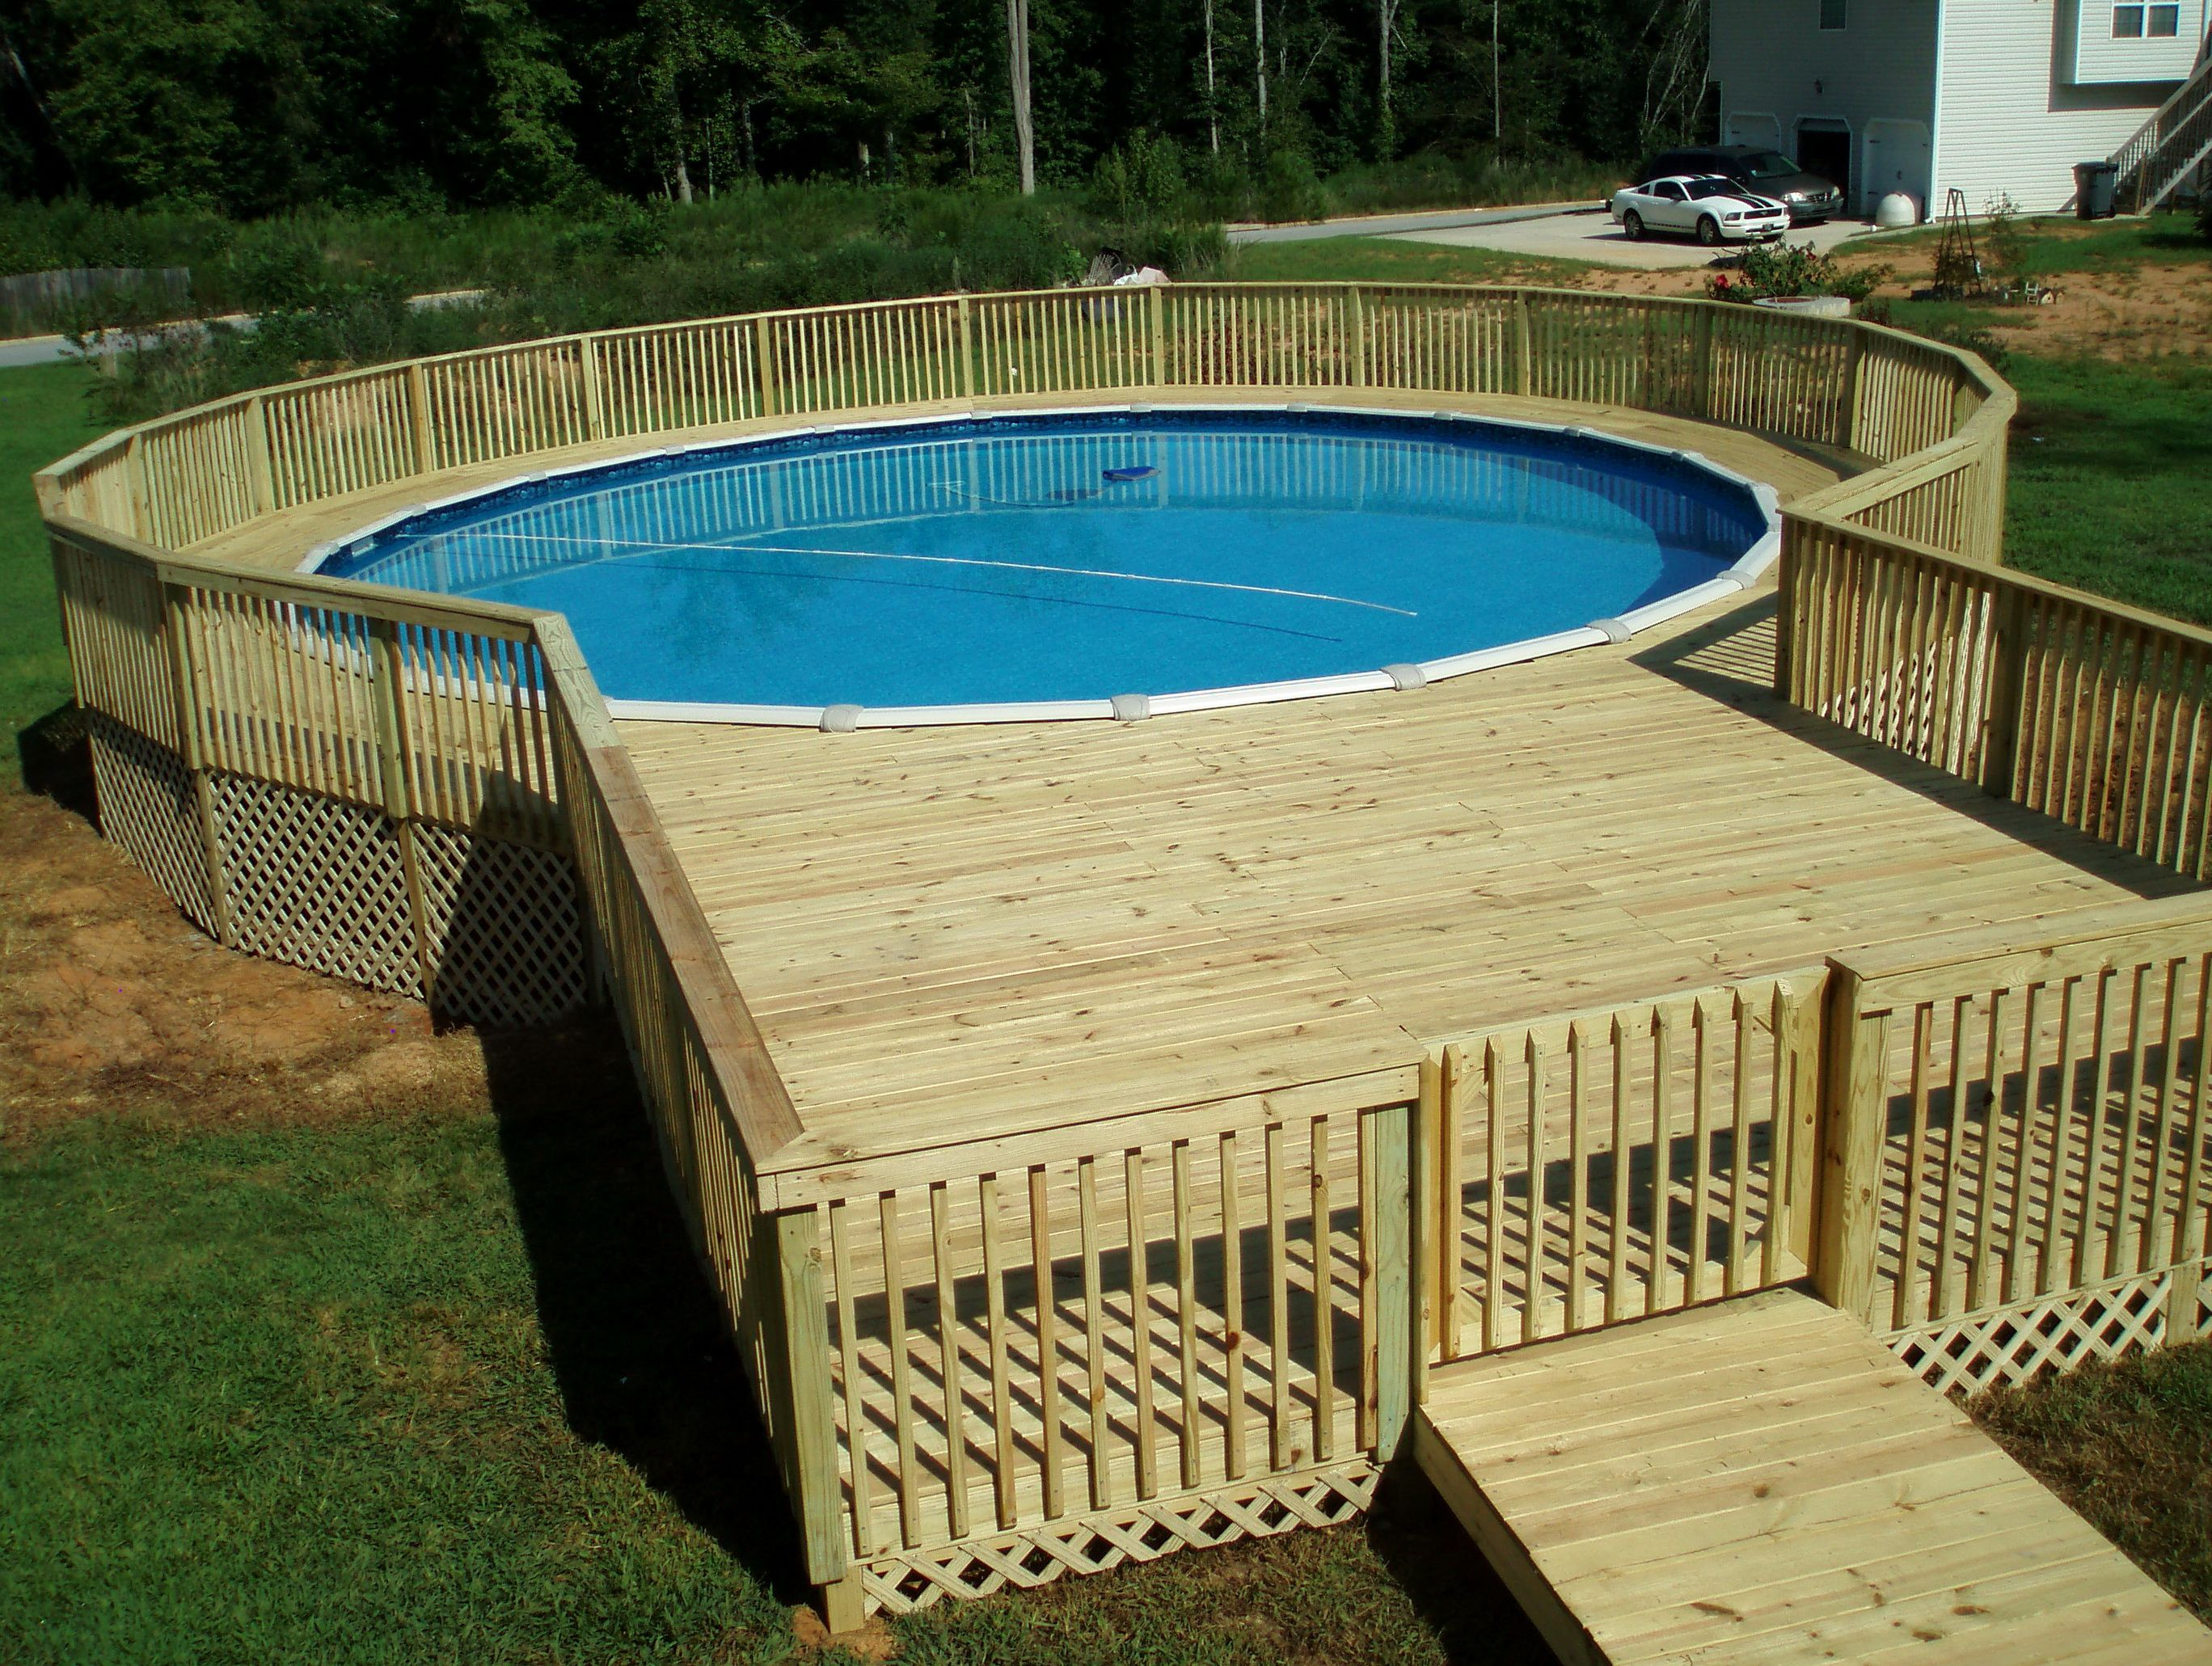 to make it look eye catching ideas like above ground pool deck kits can be used